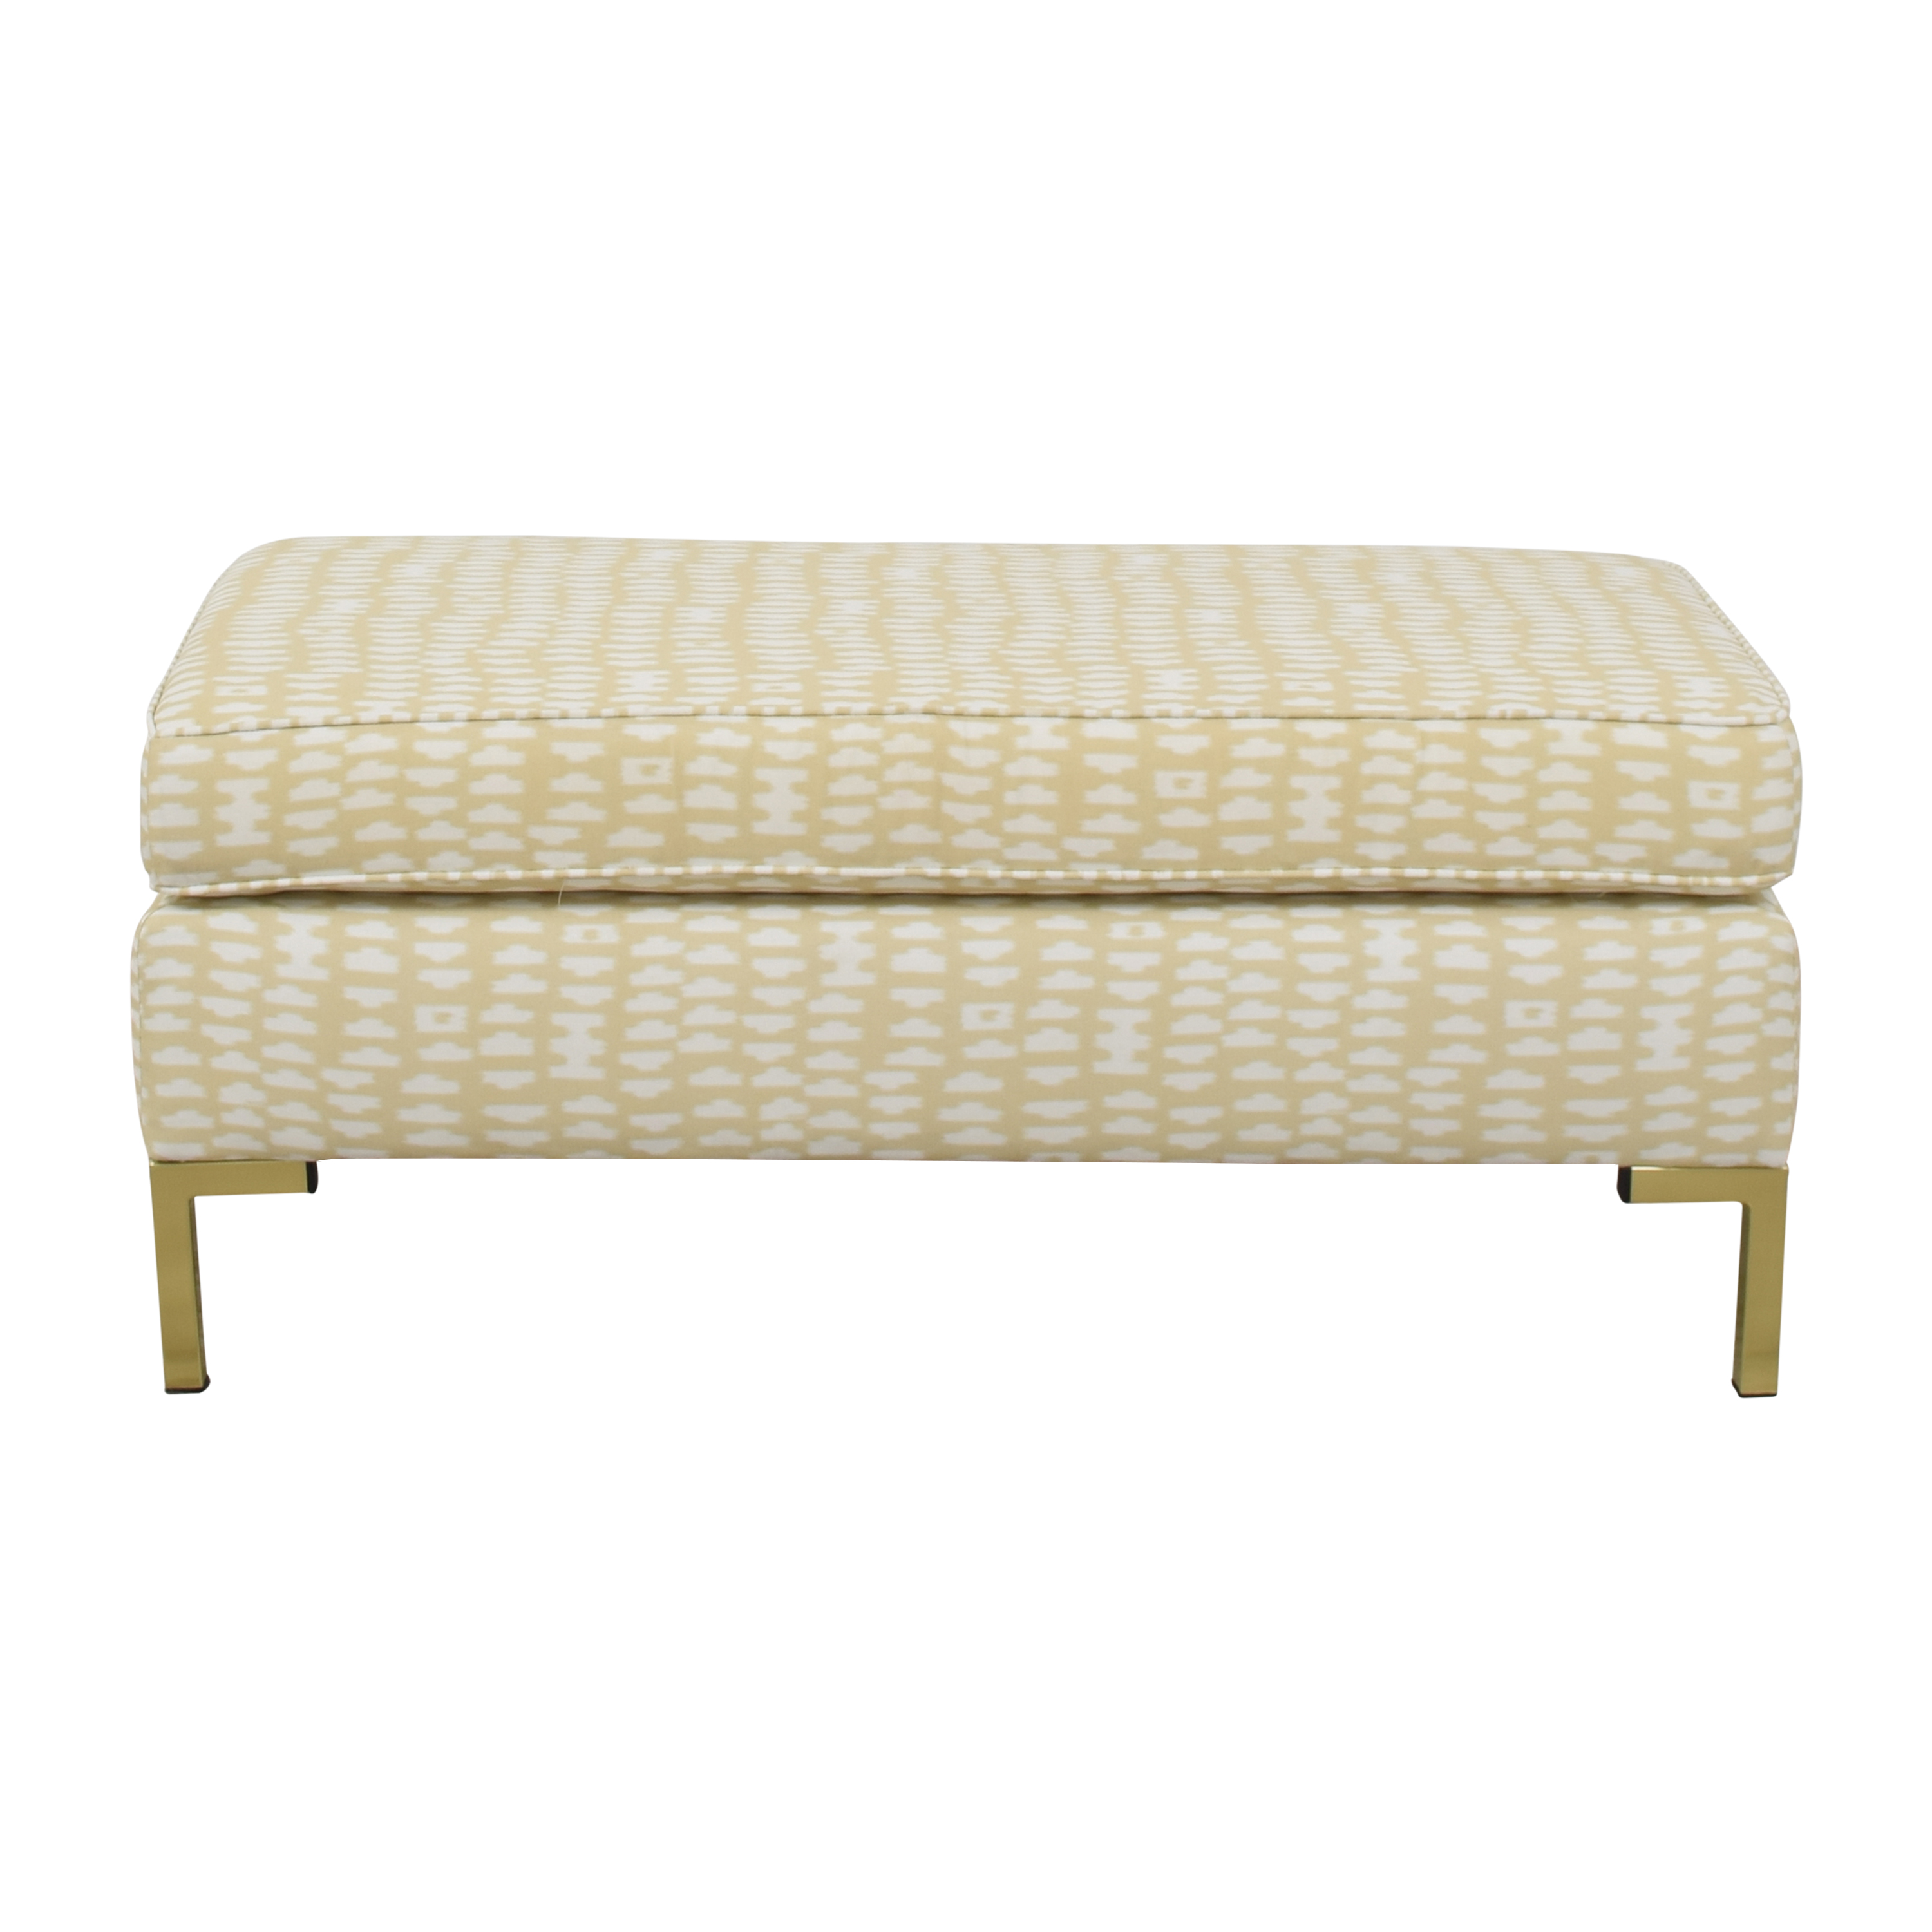 The Inside The Inside Sand Odalisque Modern Bench price